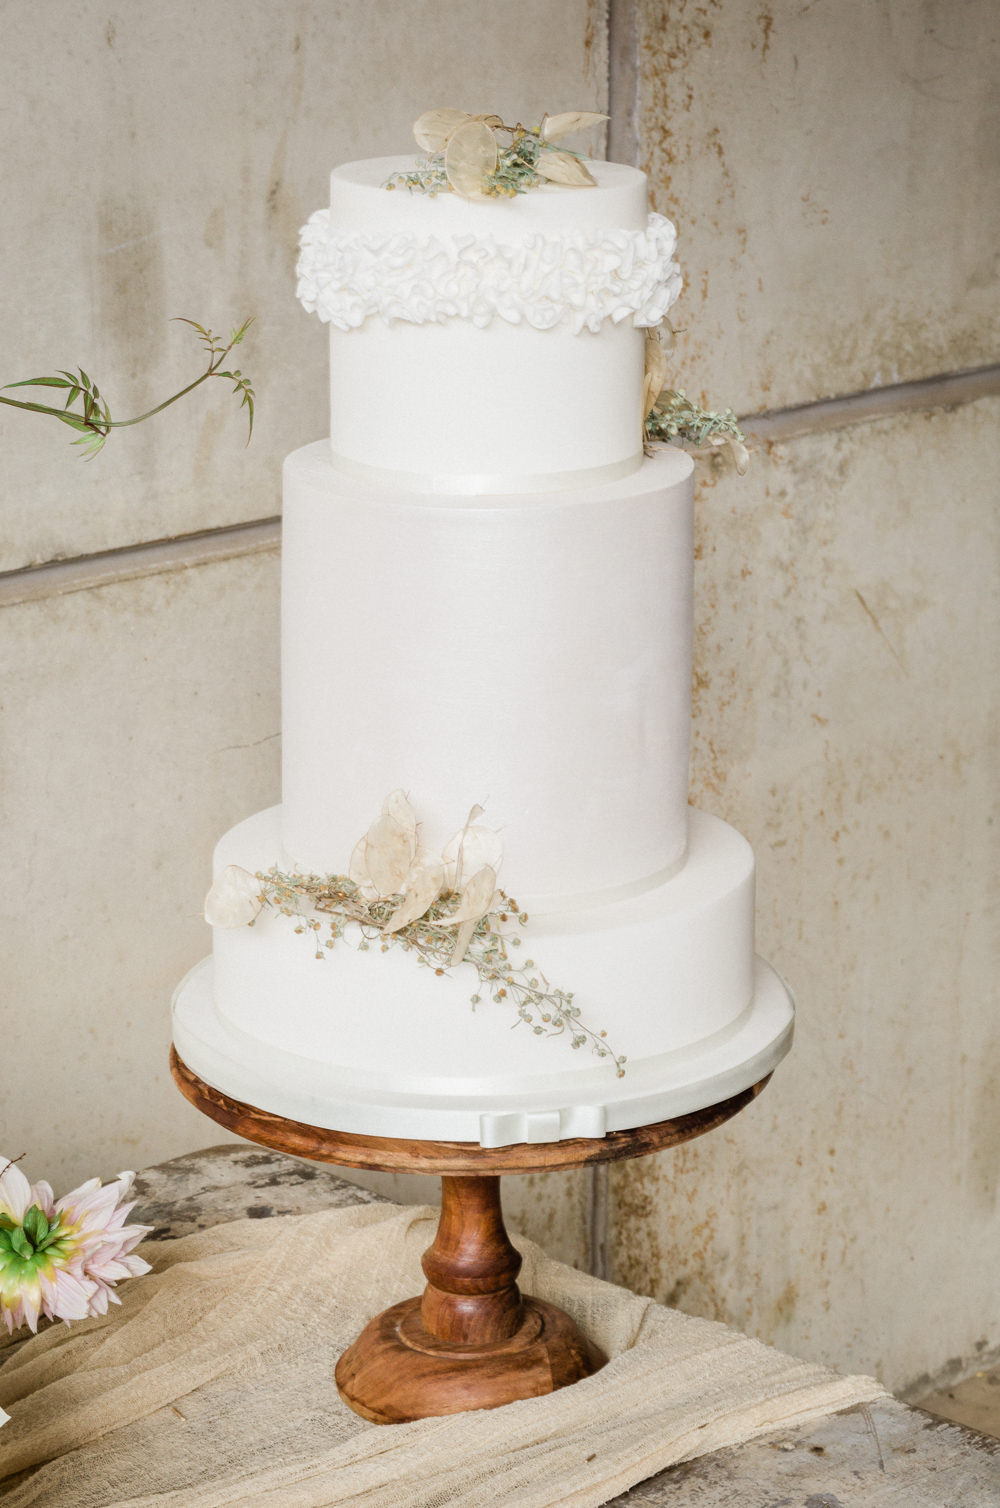 Cake Iced Ruffle White Flowers Wooden Stand Fine Art Farm Wedding Ideas Seyi Rochelle Photography